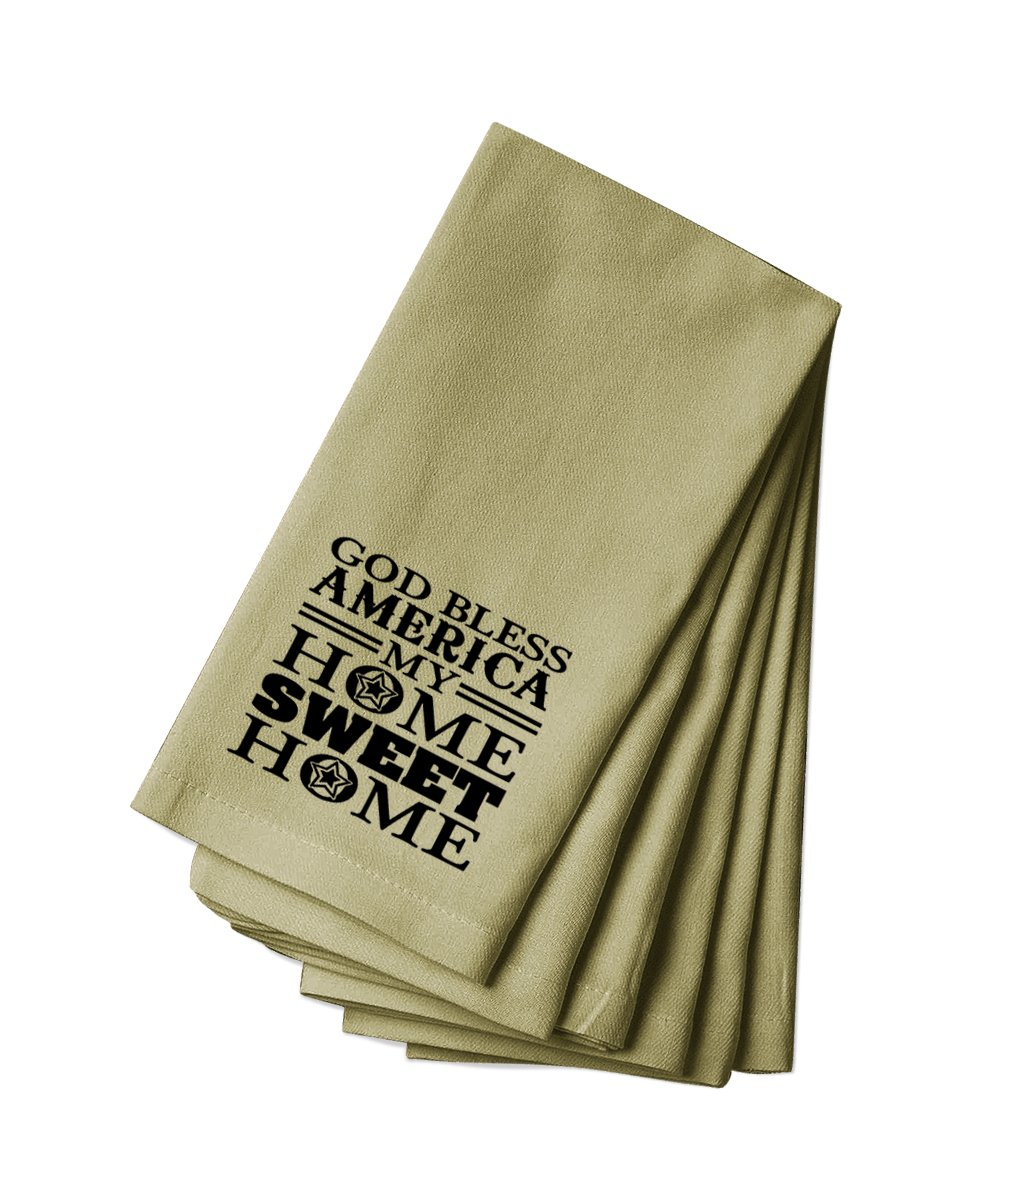 Style in Print Canvas Napkin Set Of 4 Good Bless America My Home Sweet Home By